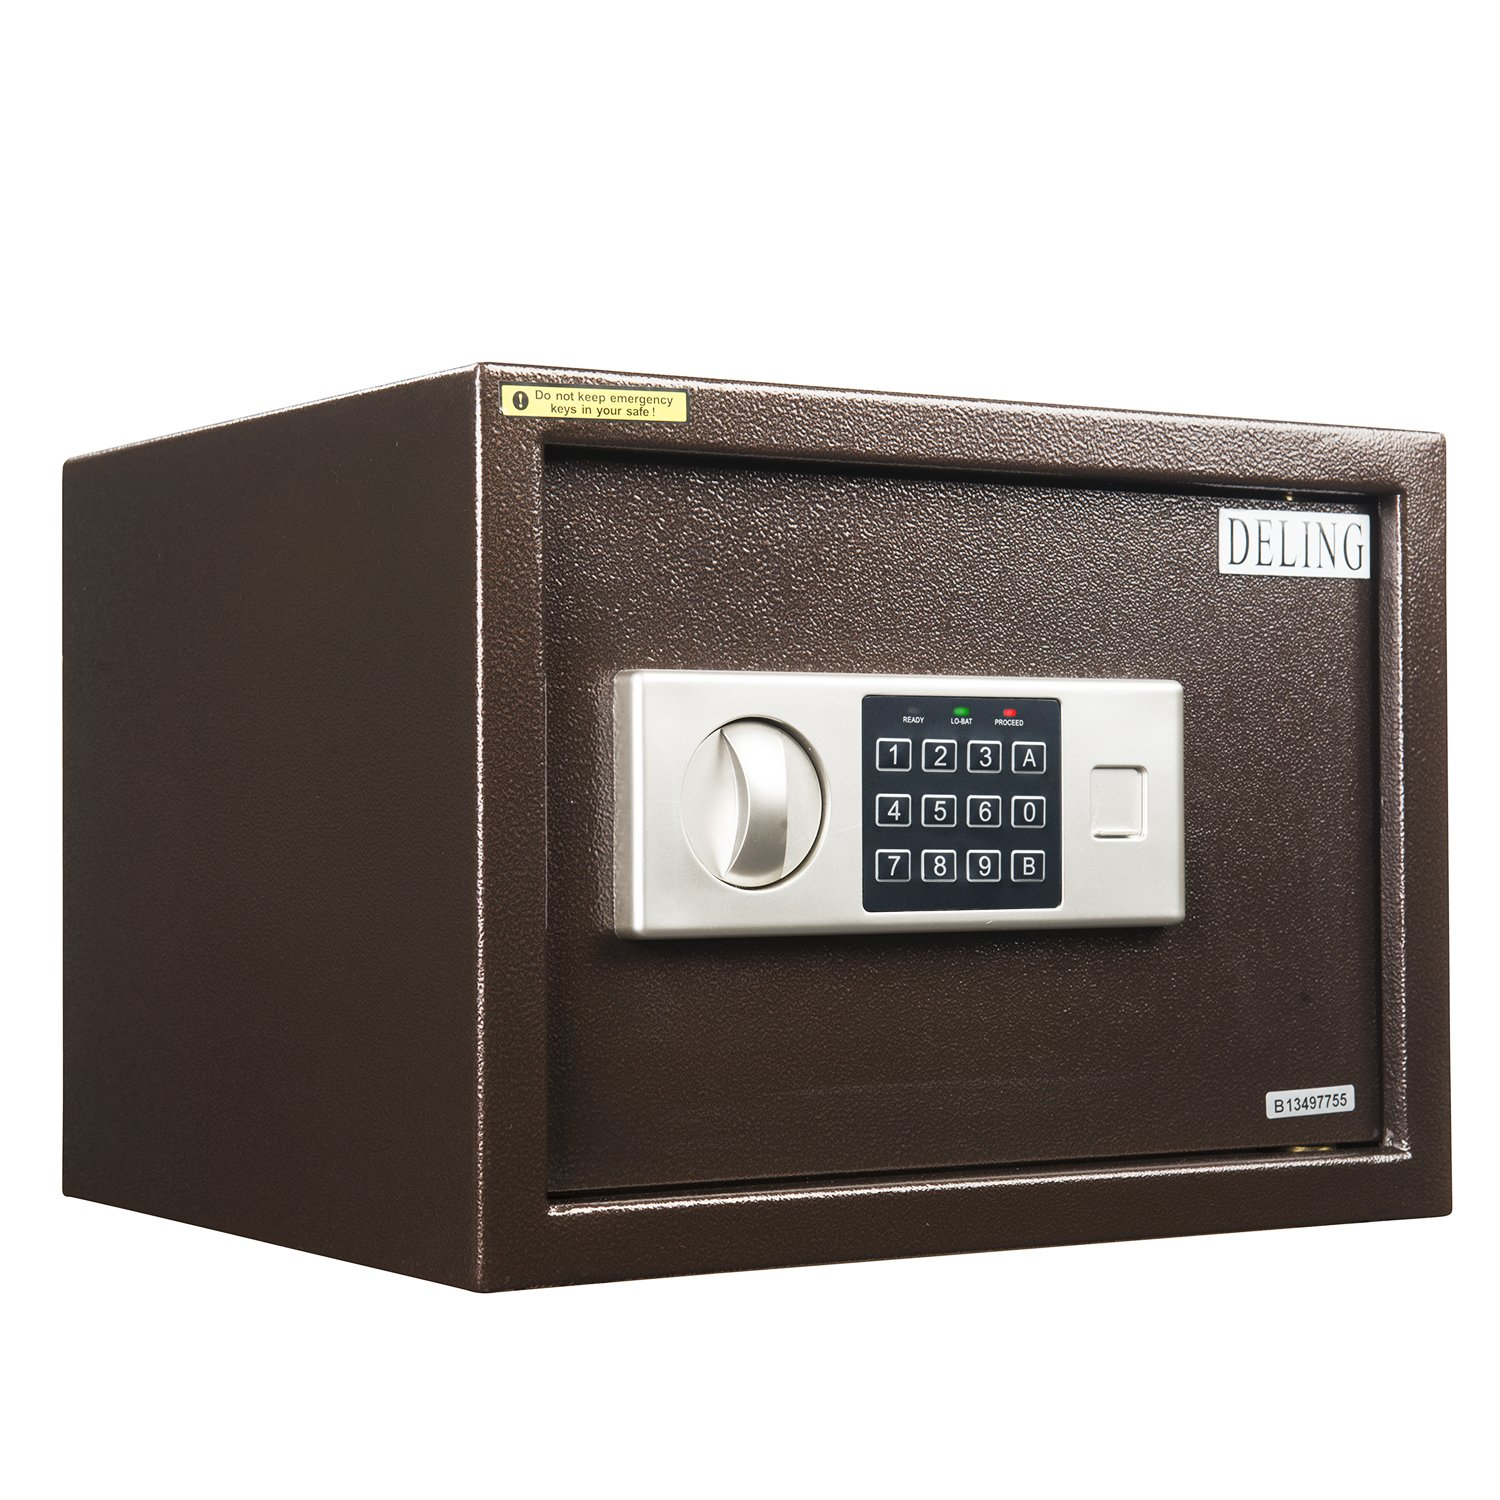 Wonlink 0.8cu.ft. Bronze Small Electronic Digital Safe Box, Password Lock, Key Lock, Jewelry Money Security Box, for Home Office Hotel Business